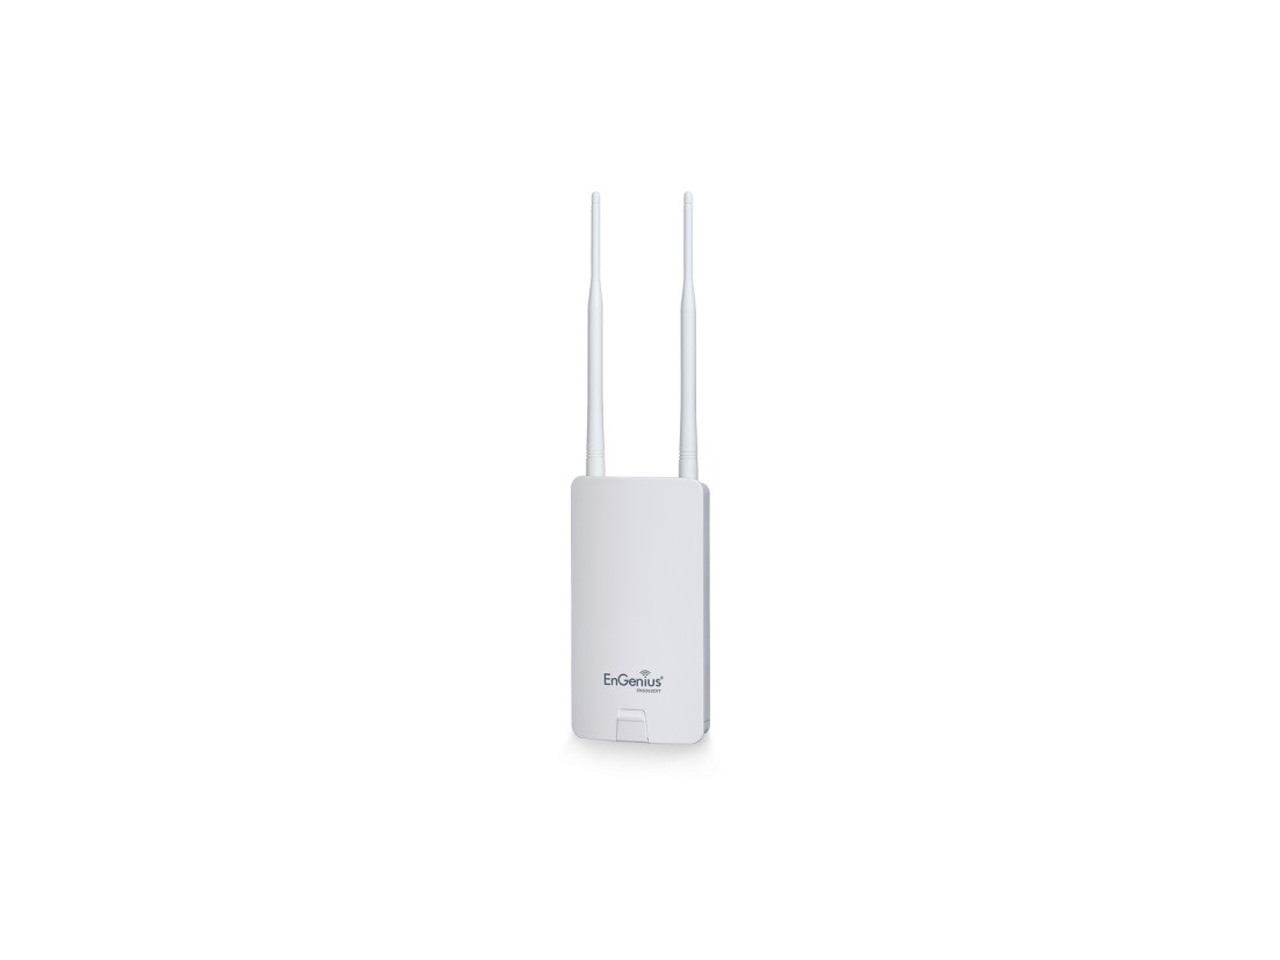 ENGENİUS ENS202EXT - Outdoor Wireless Access Point; N300 2.4 GHz Removable Antennas